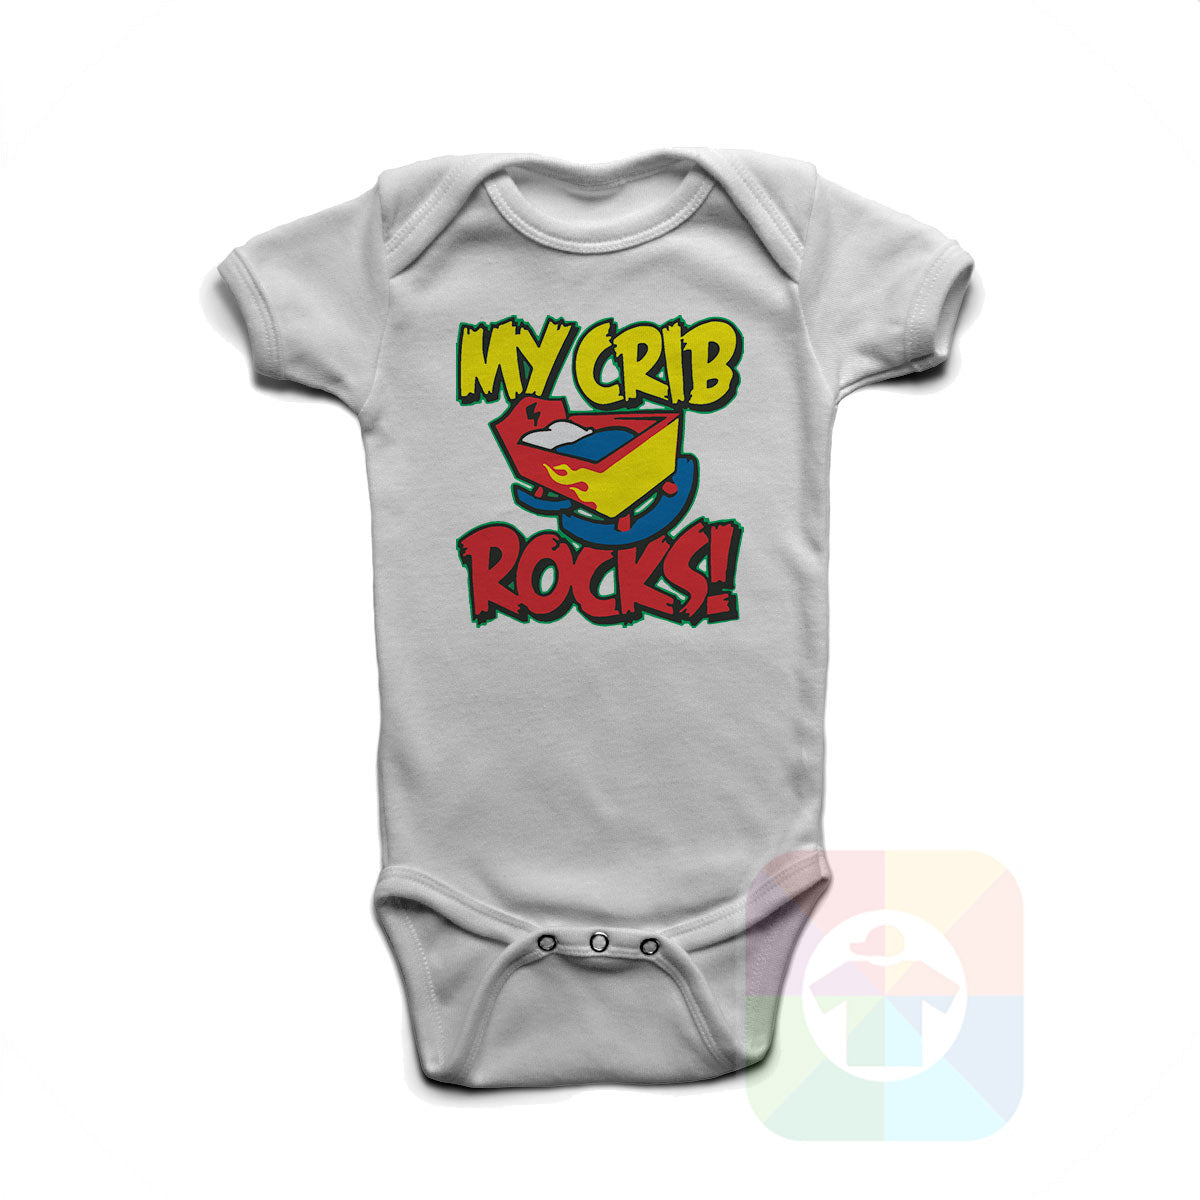 A WHITE Baby Onesie with the  ' Baby onesie 'MY CRIB ROCKS' kids funny novelty design. #8264 / New Born, 6m, 12m, 24m Sizes ' design.